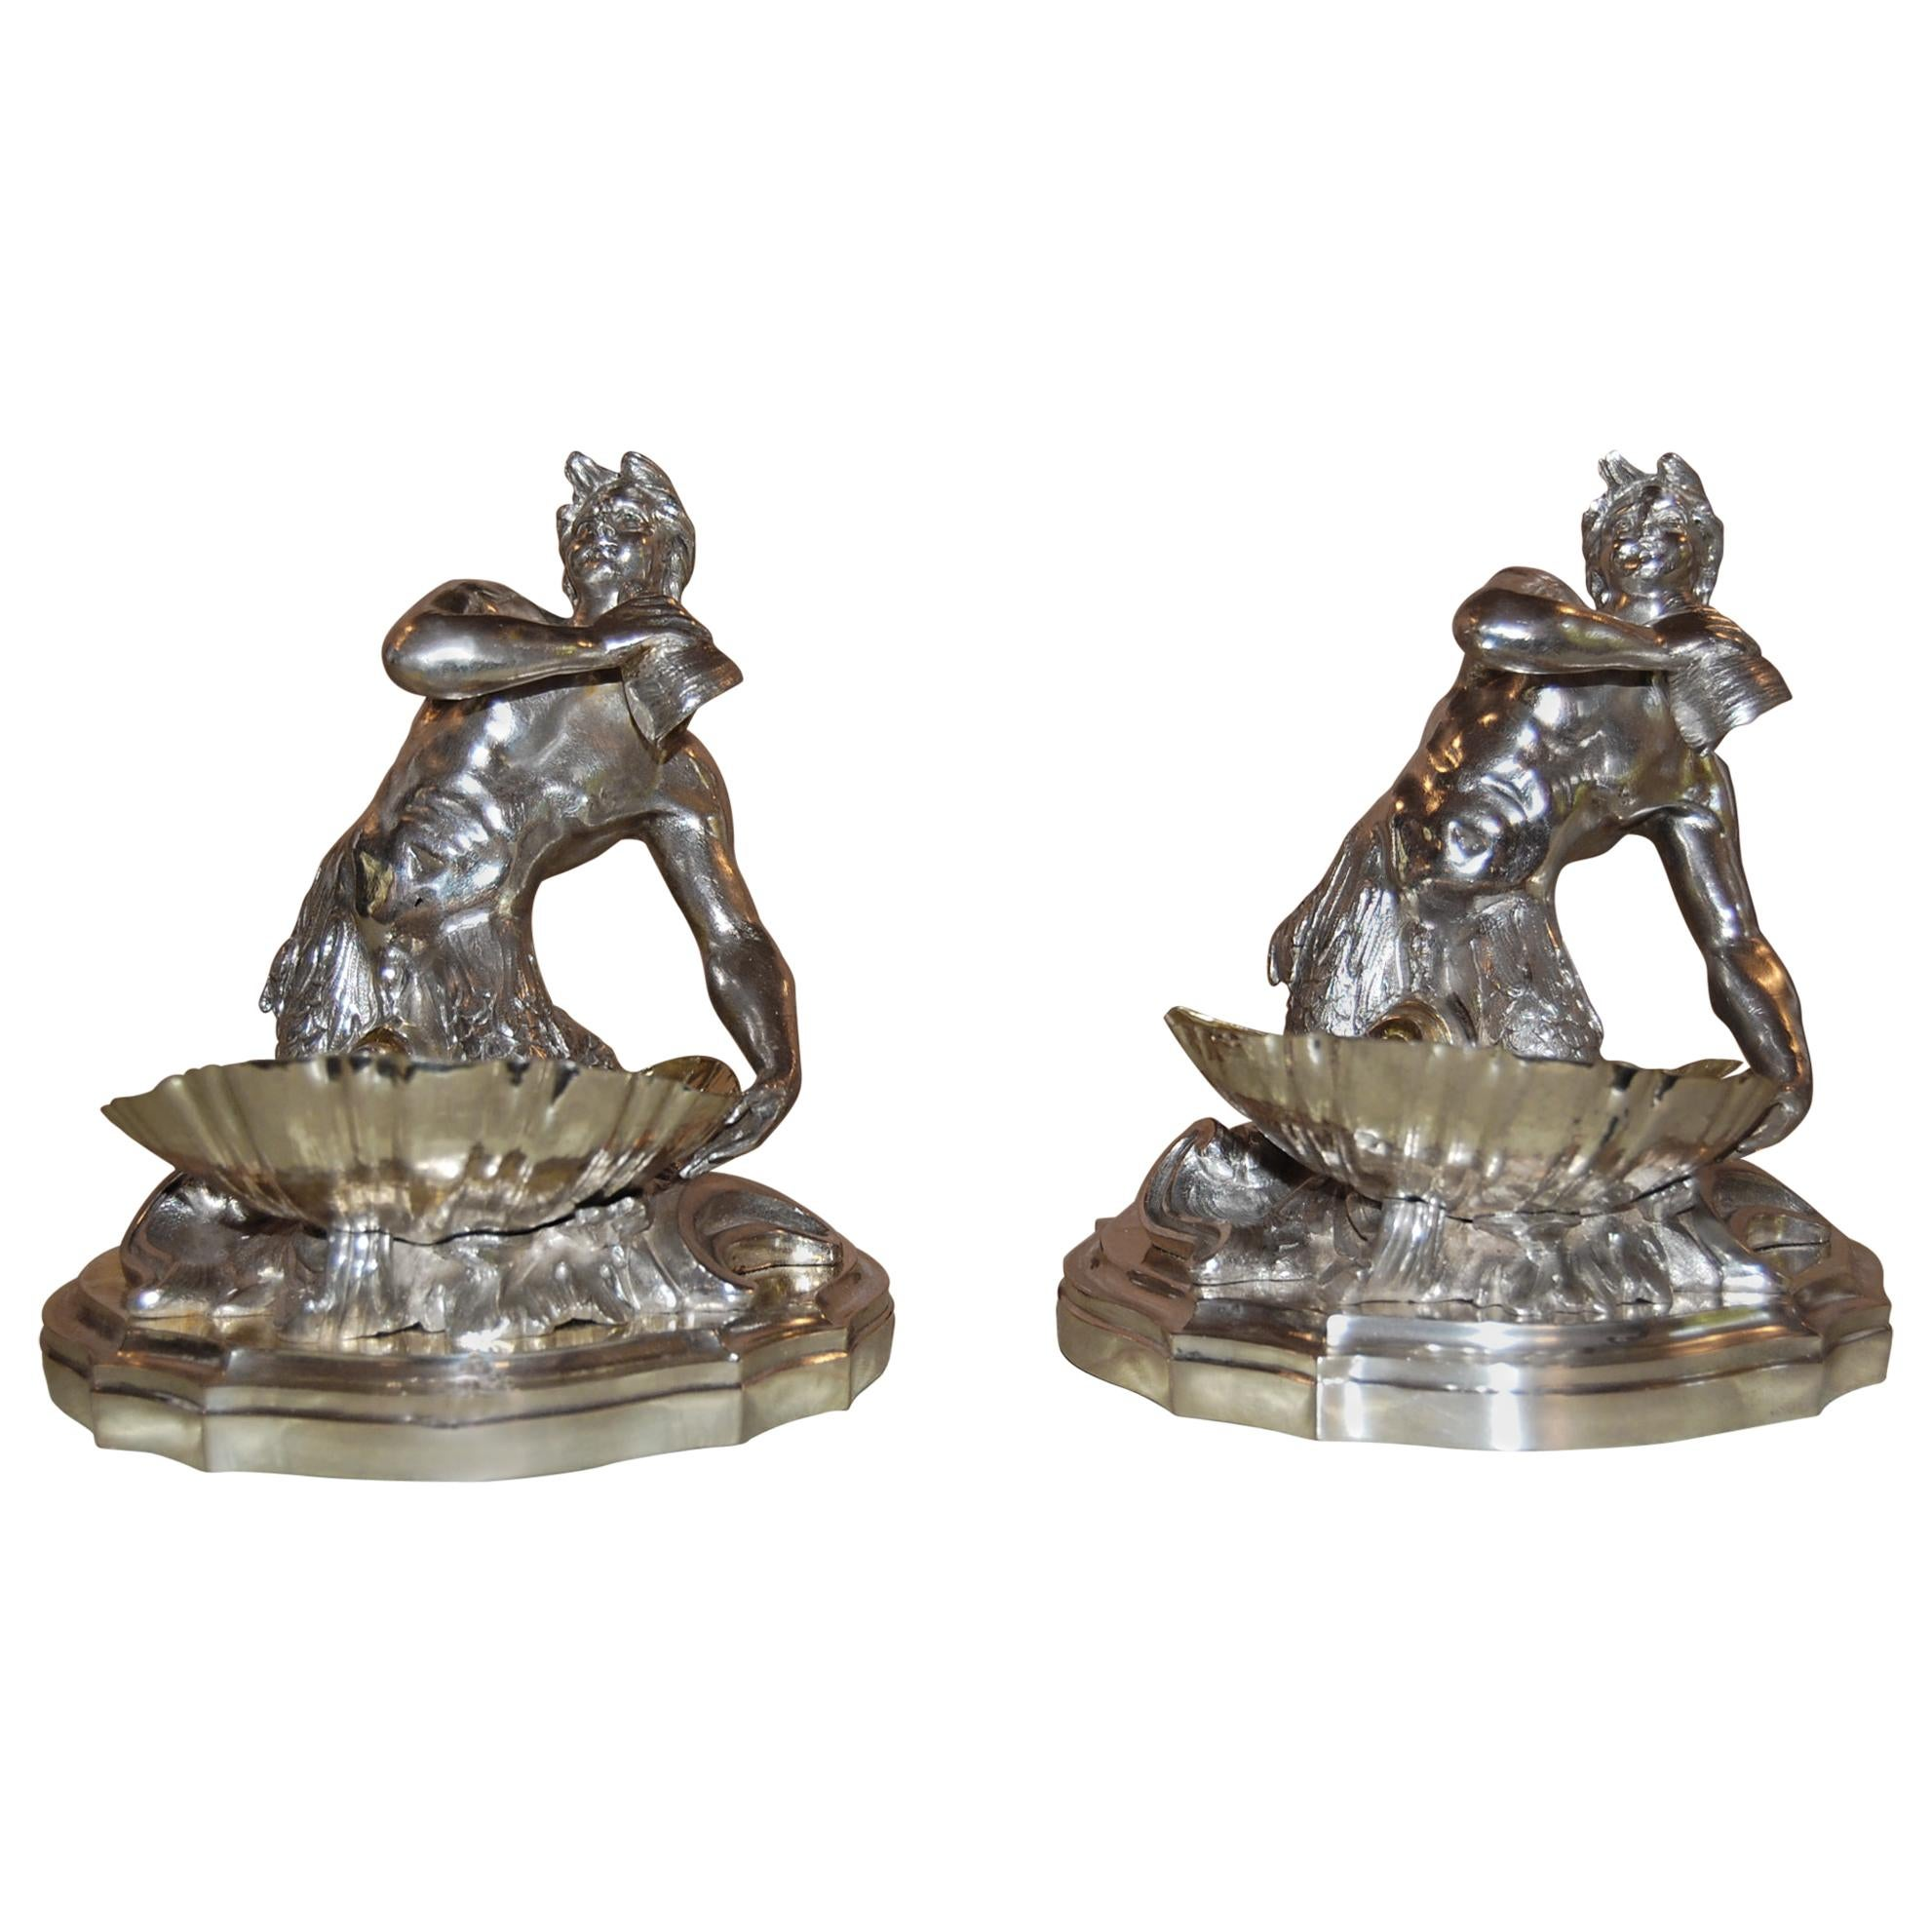 Silver Plated Candy/ Nut Bowls Depicting a Neptune God-Like Mermaid Figure, Pair